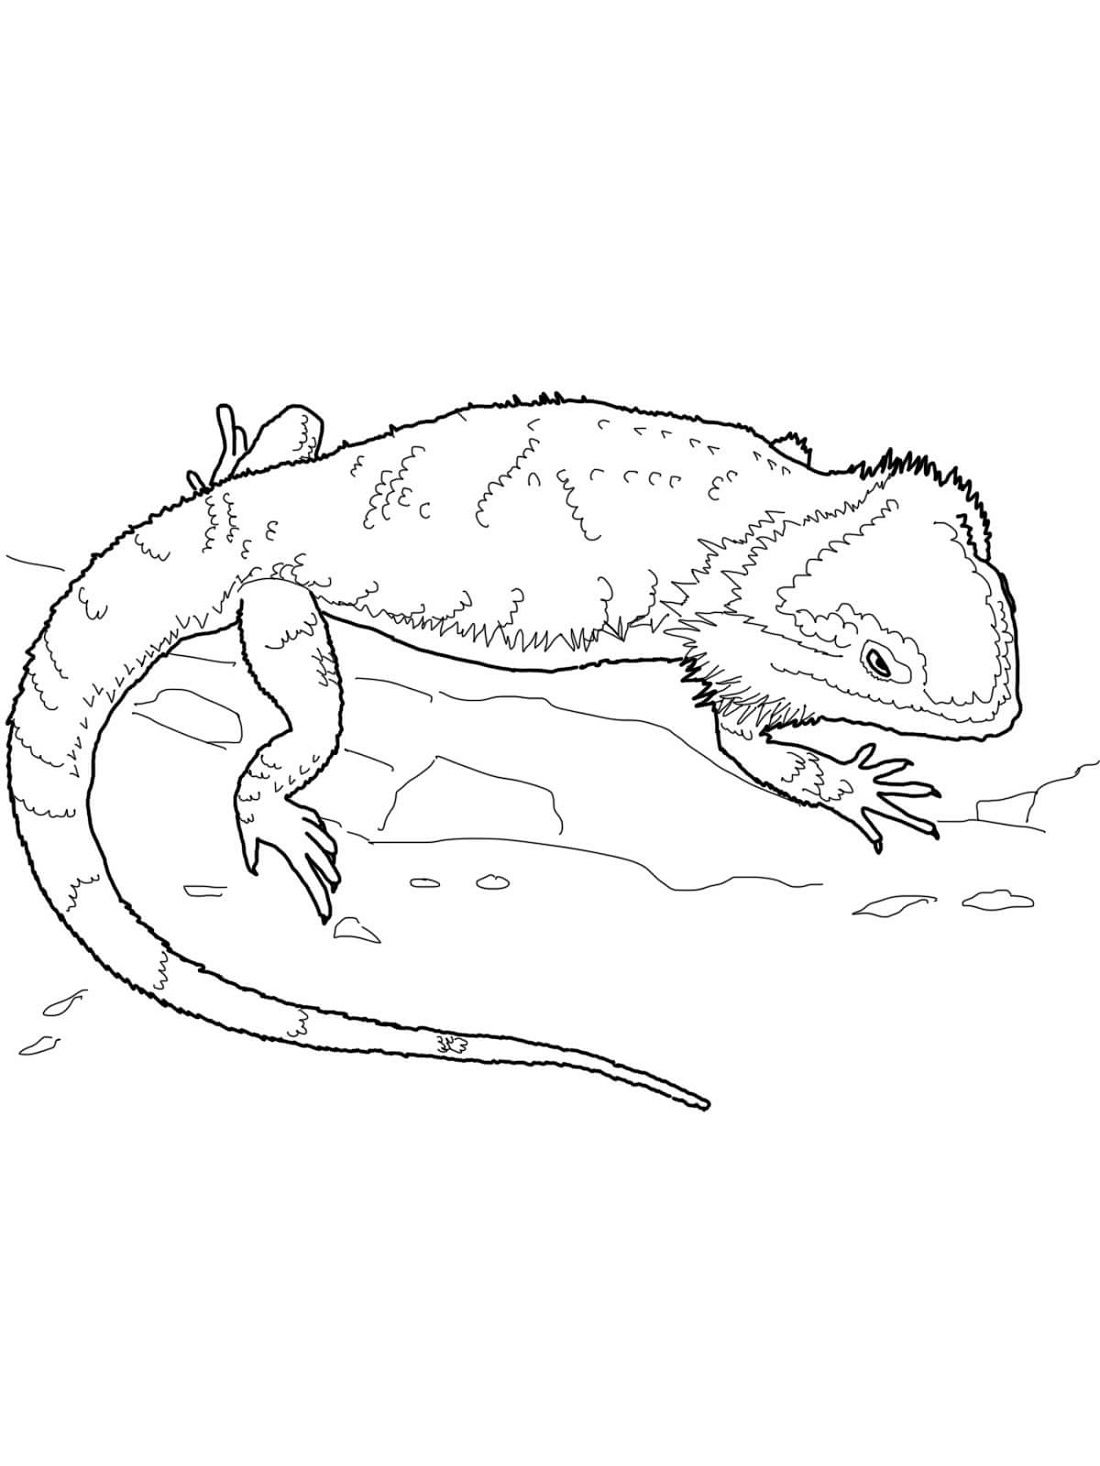 Bearded Dragon Coloring Pages Printable Shelter Dragon Coloring Page Bearded Dragon Colors Dinosaur Coloring Pages